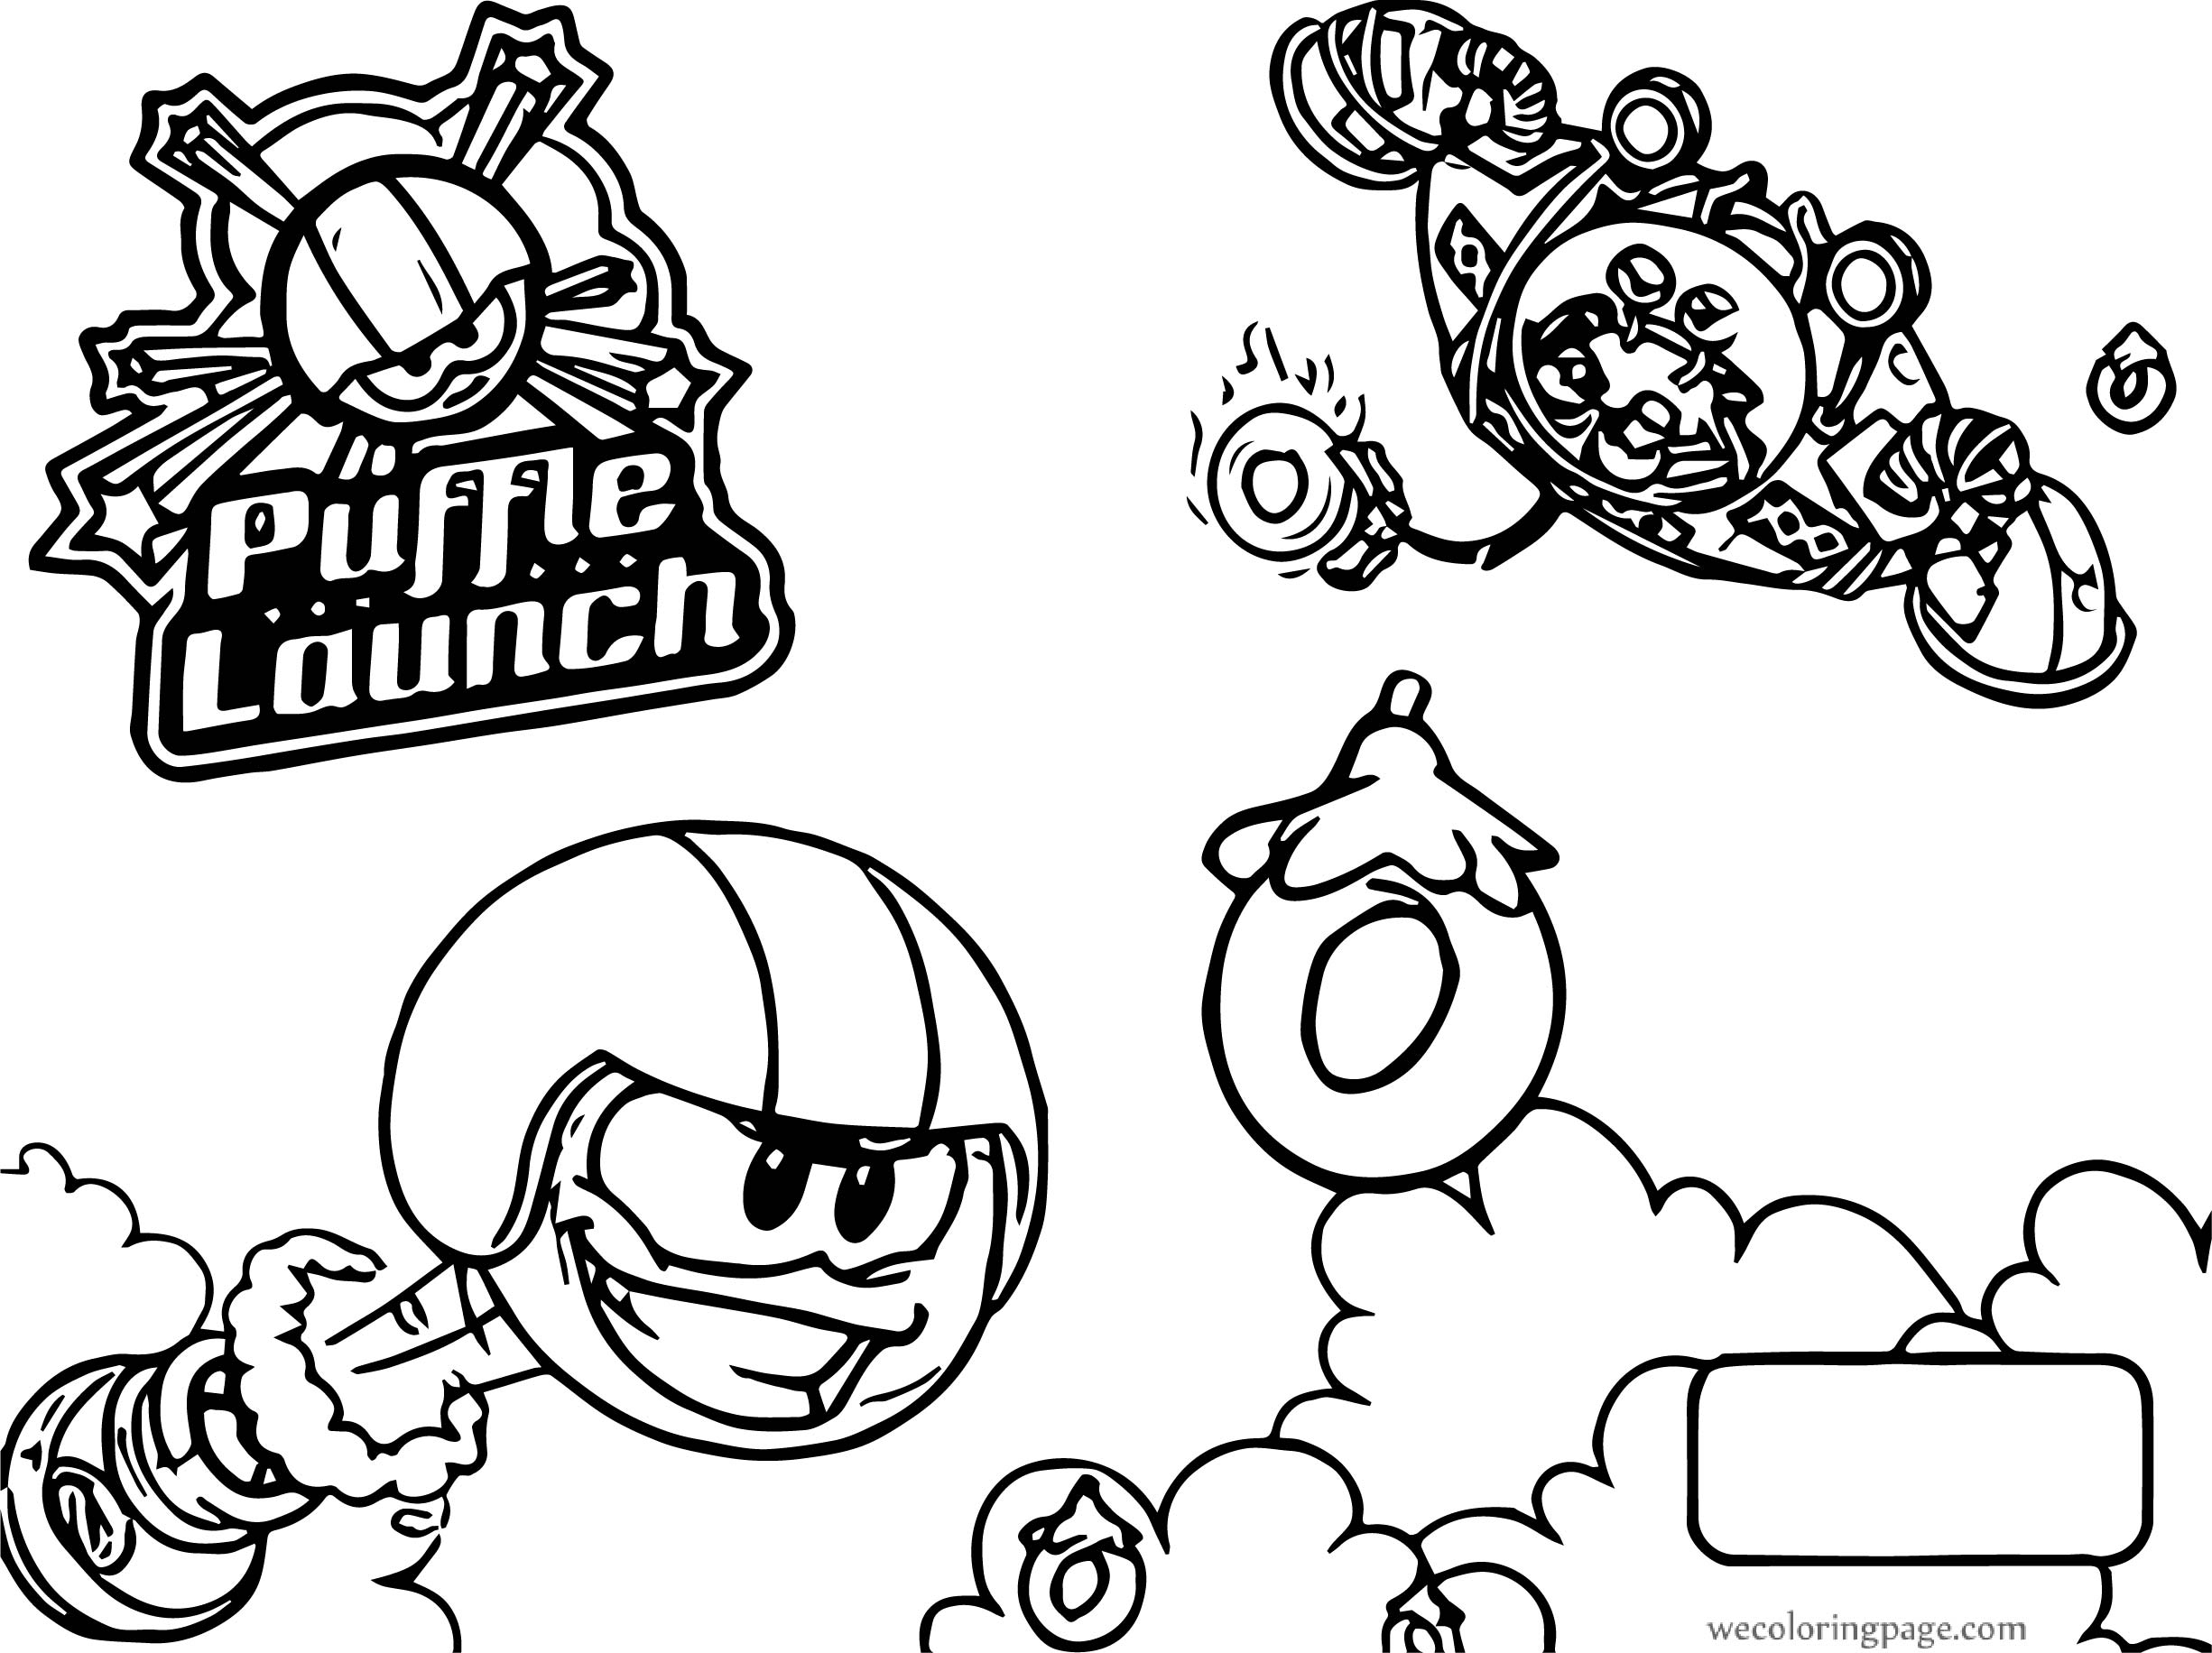 Club Penguin Puffle Launch Coloring Page | Wecoloringpage.com